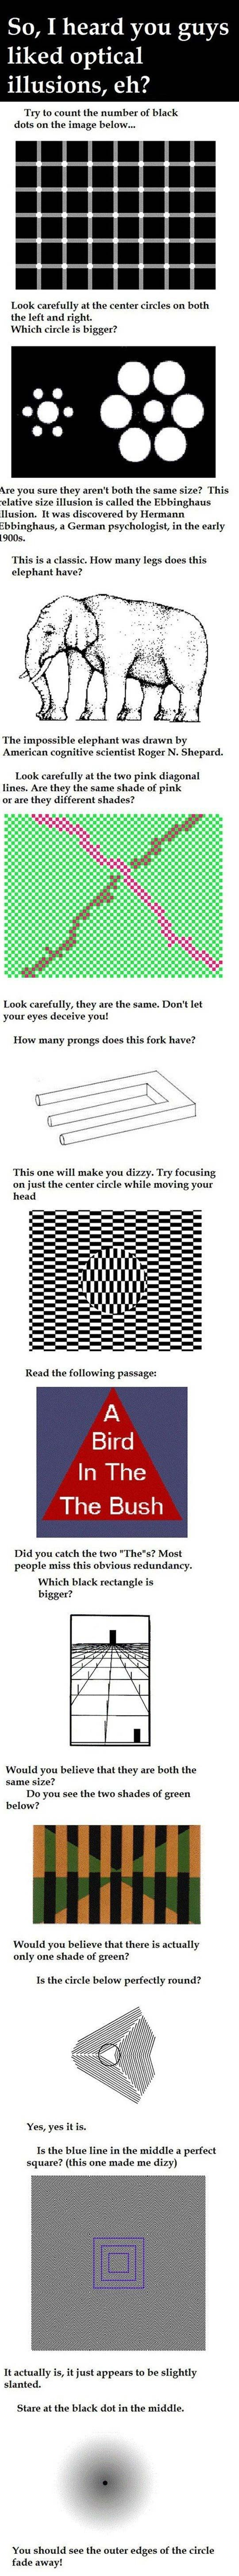 Don't be deceived by illusions of the first glance a quick study of illusions will help you see what's more than meets the eye.